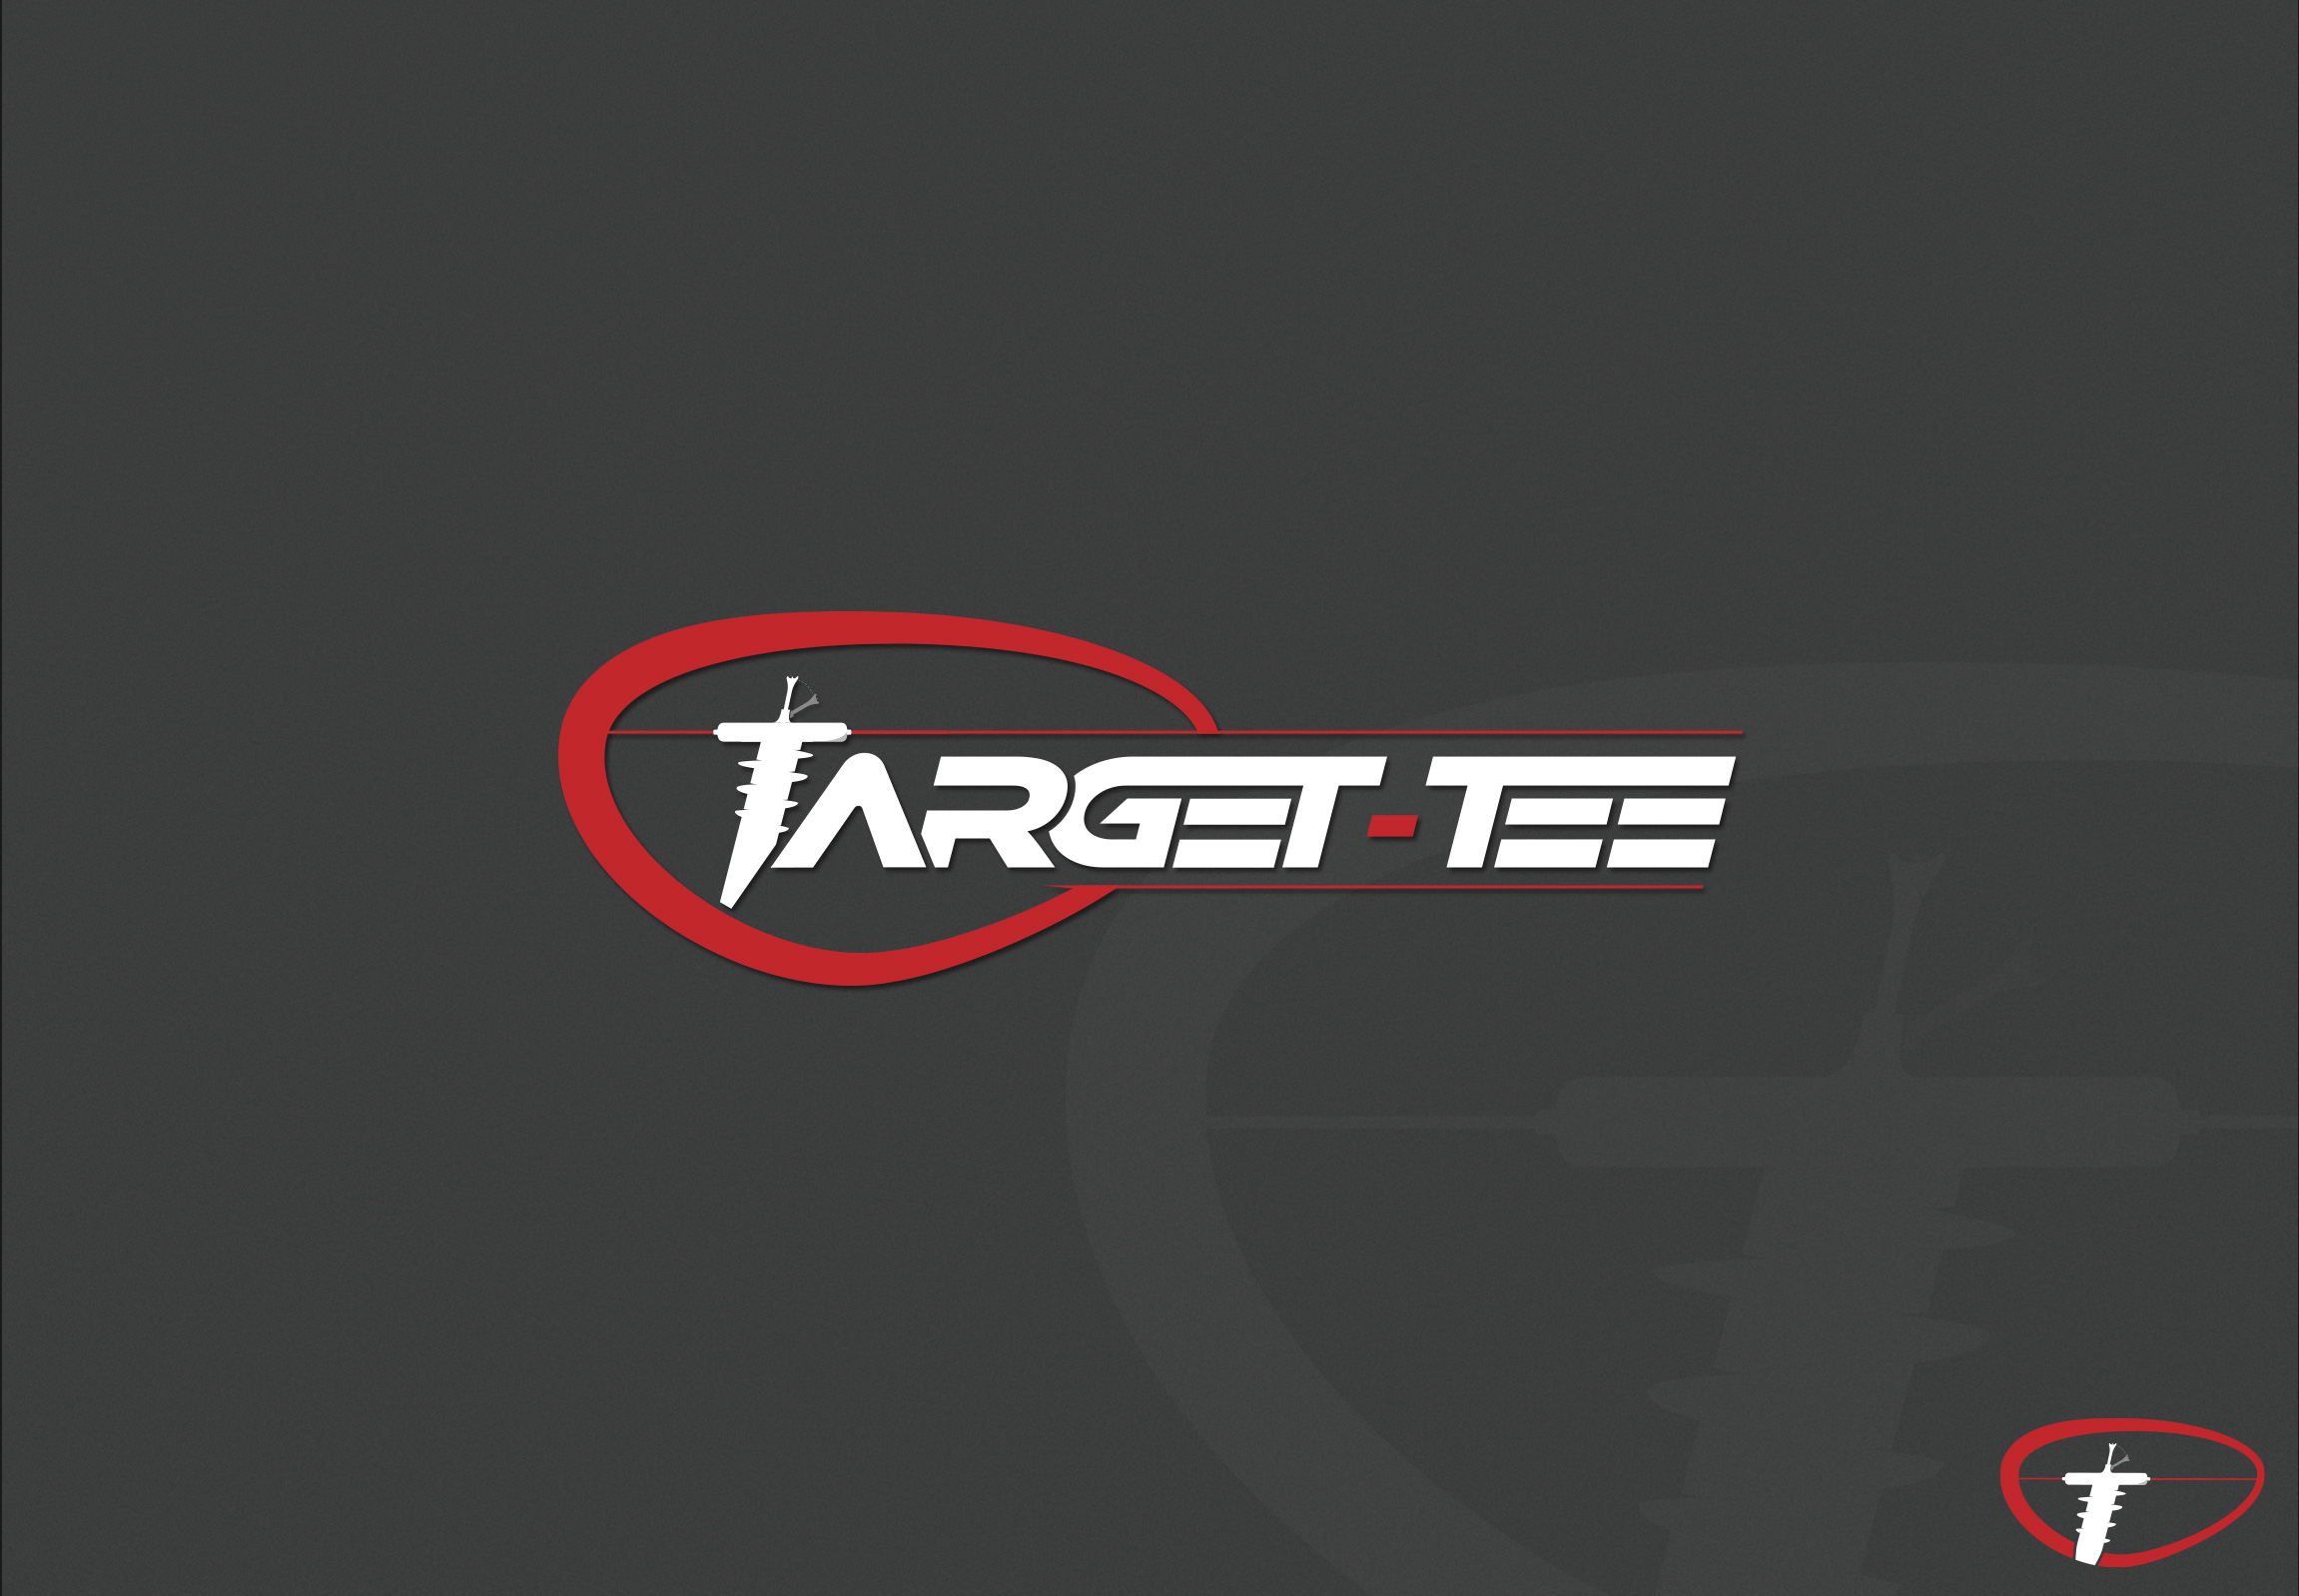 Logo Design by olii - Entry No. 115 in the Logo Design Contest Imaginative Logo Design for TARGET-TEE.